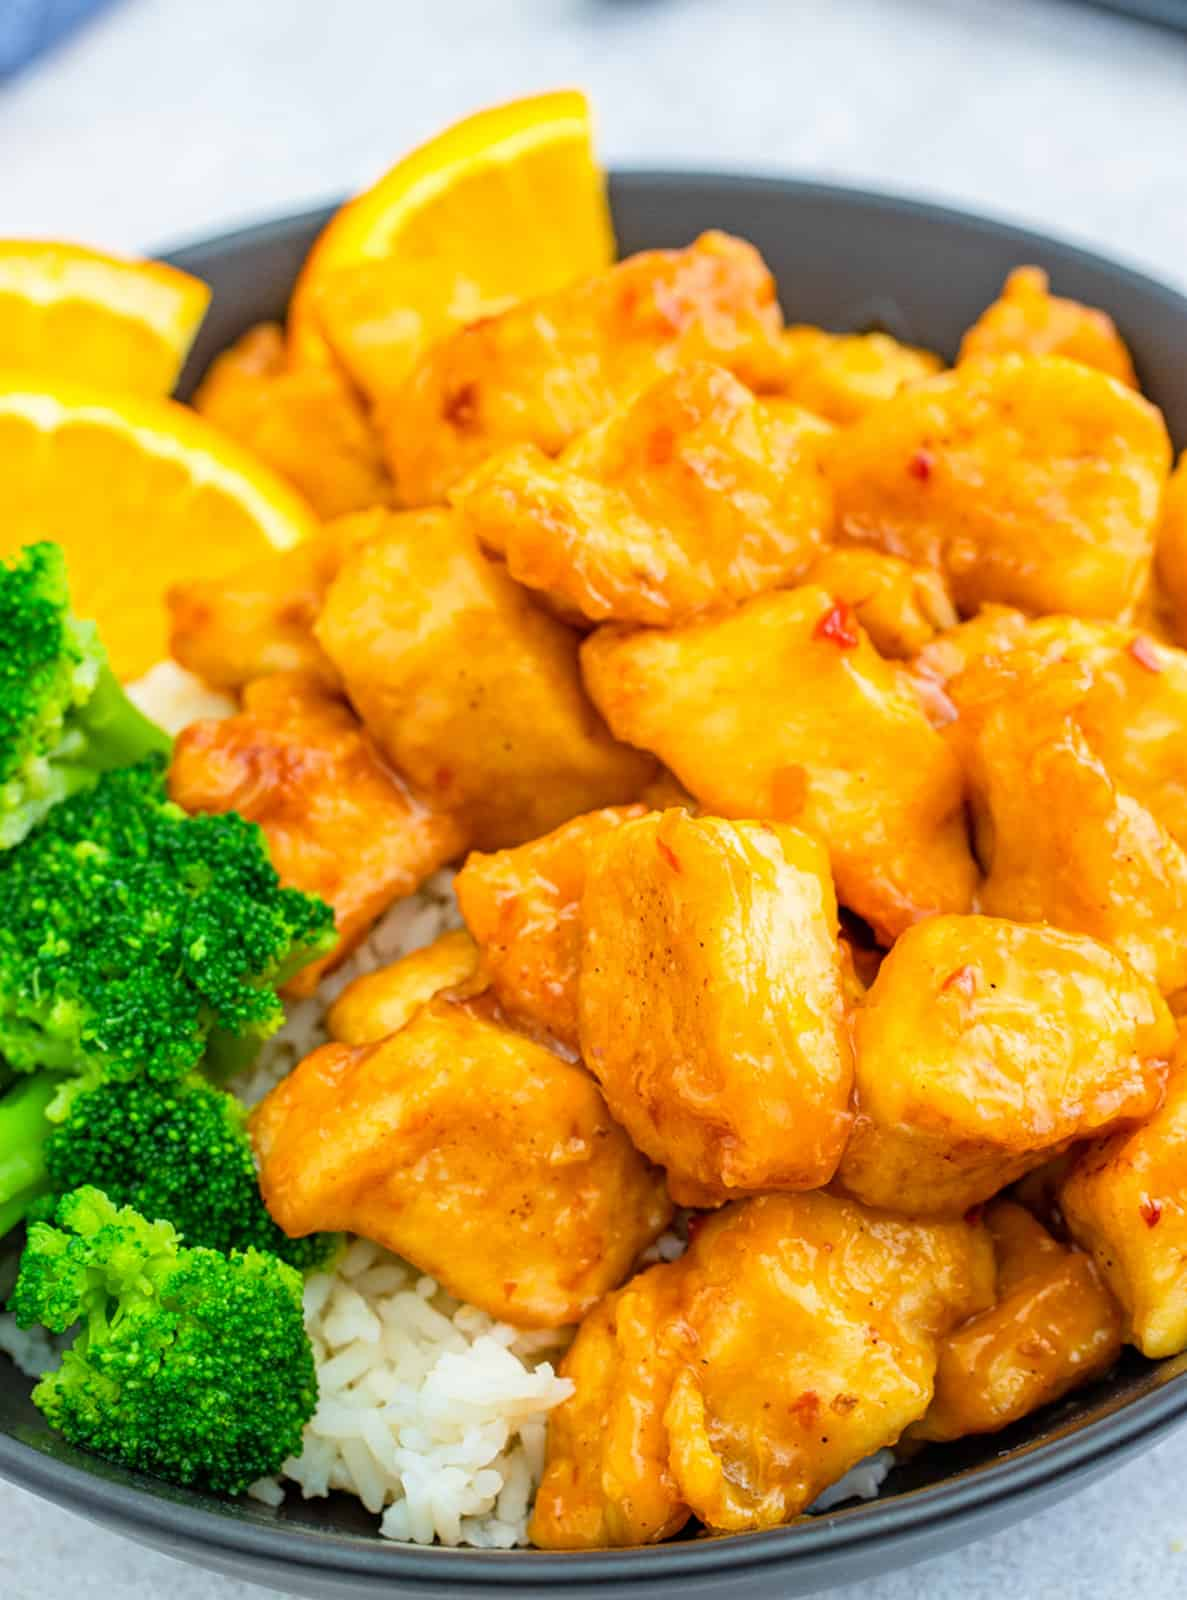 Close up of Orange Chicken on black plate with side dishes